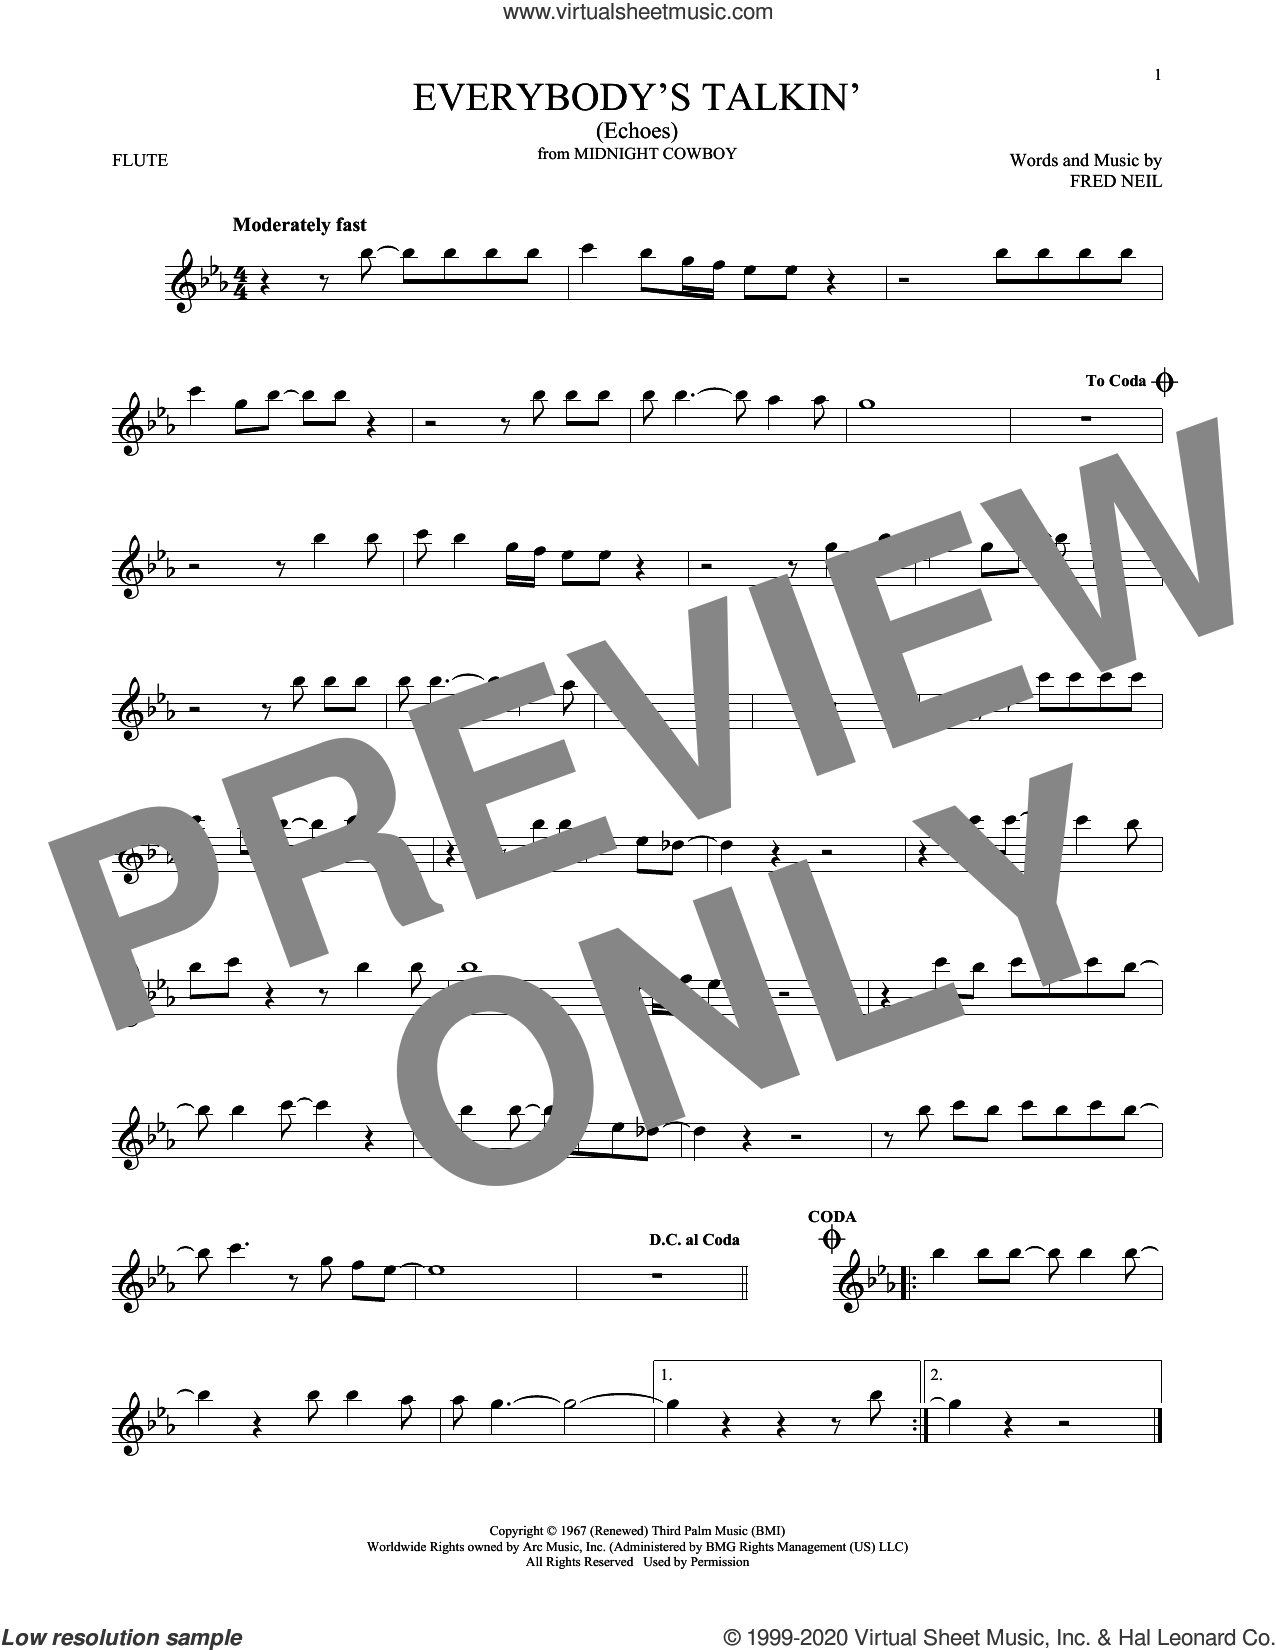 Everybody's Talkin' (Echoes) sheet music for flute solo by Harry Nilsson and Fred Neil, intermediate skill level